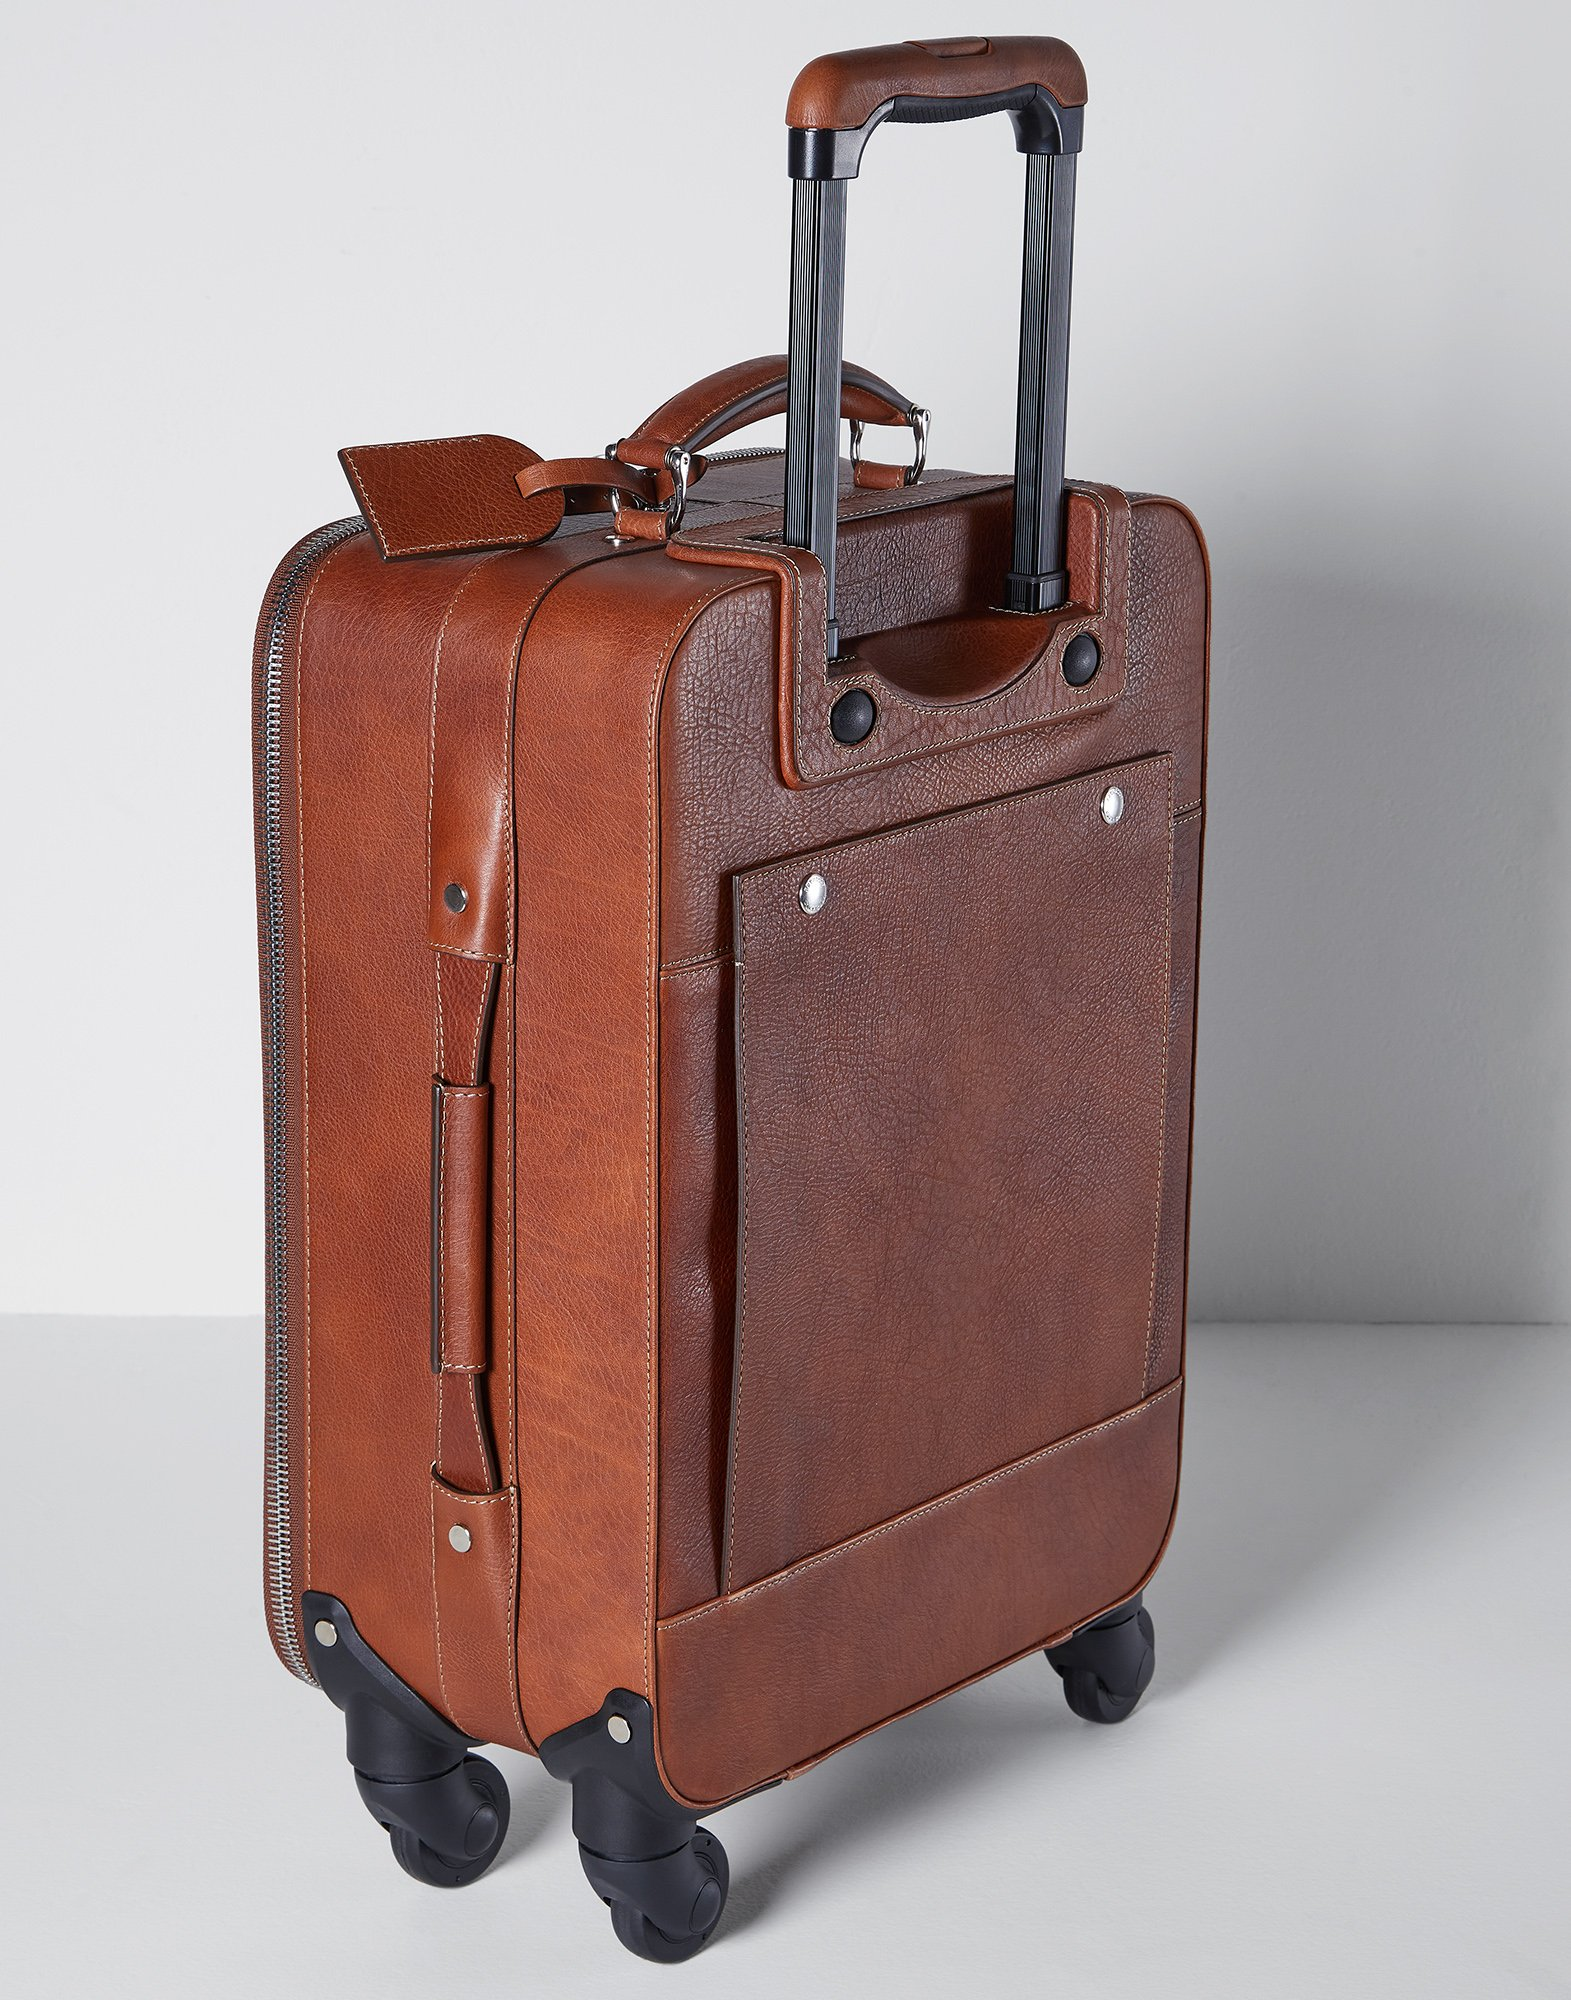 Wheeled Luggage Rum Man 2 - Brunello Cucinelli